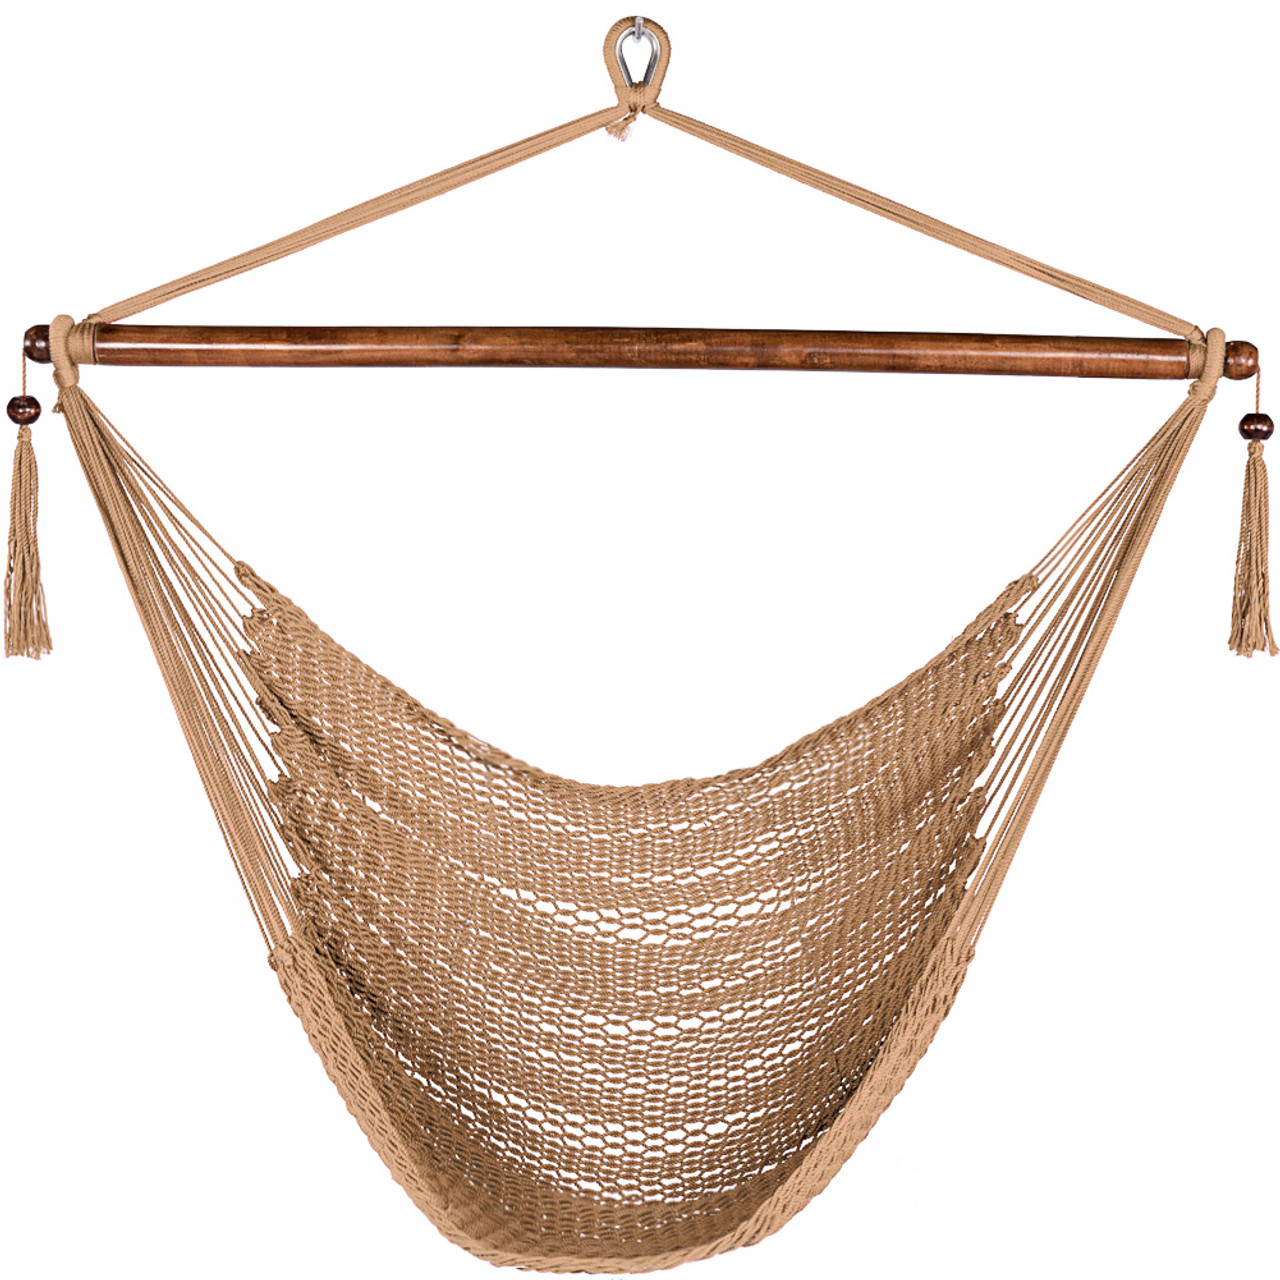 lazy daze hammocks caribbean hanging swing chair soft spun polyester rope 47 inch 47 inch poly rope hanging hammock swing chair with wood spreader      rh   sundaleoutdoor